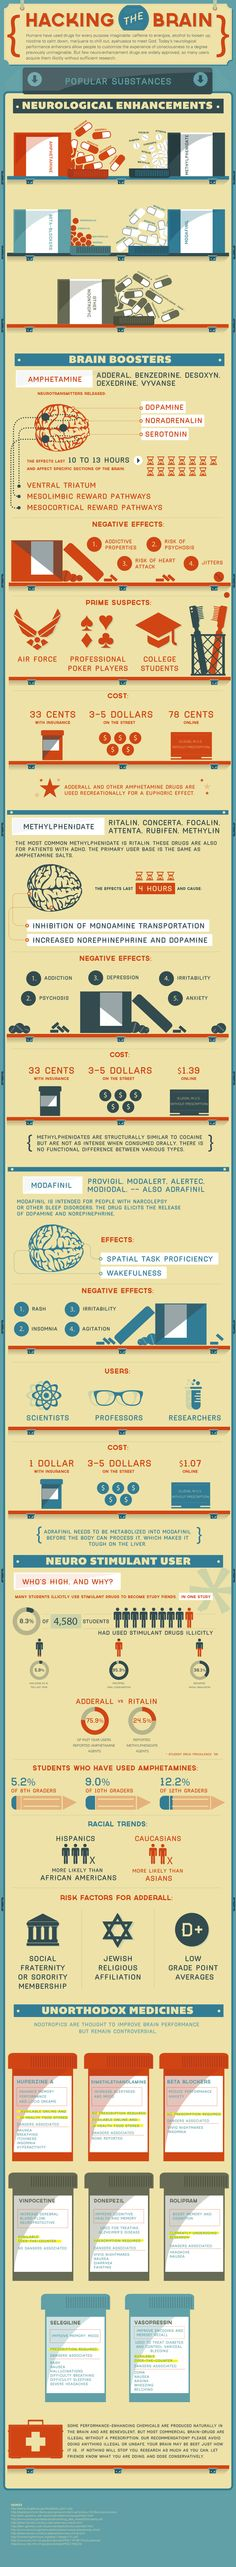 Hacking the brain - infographic